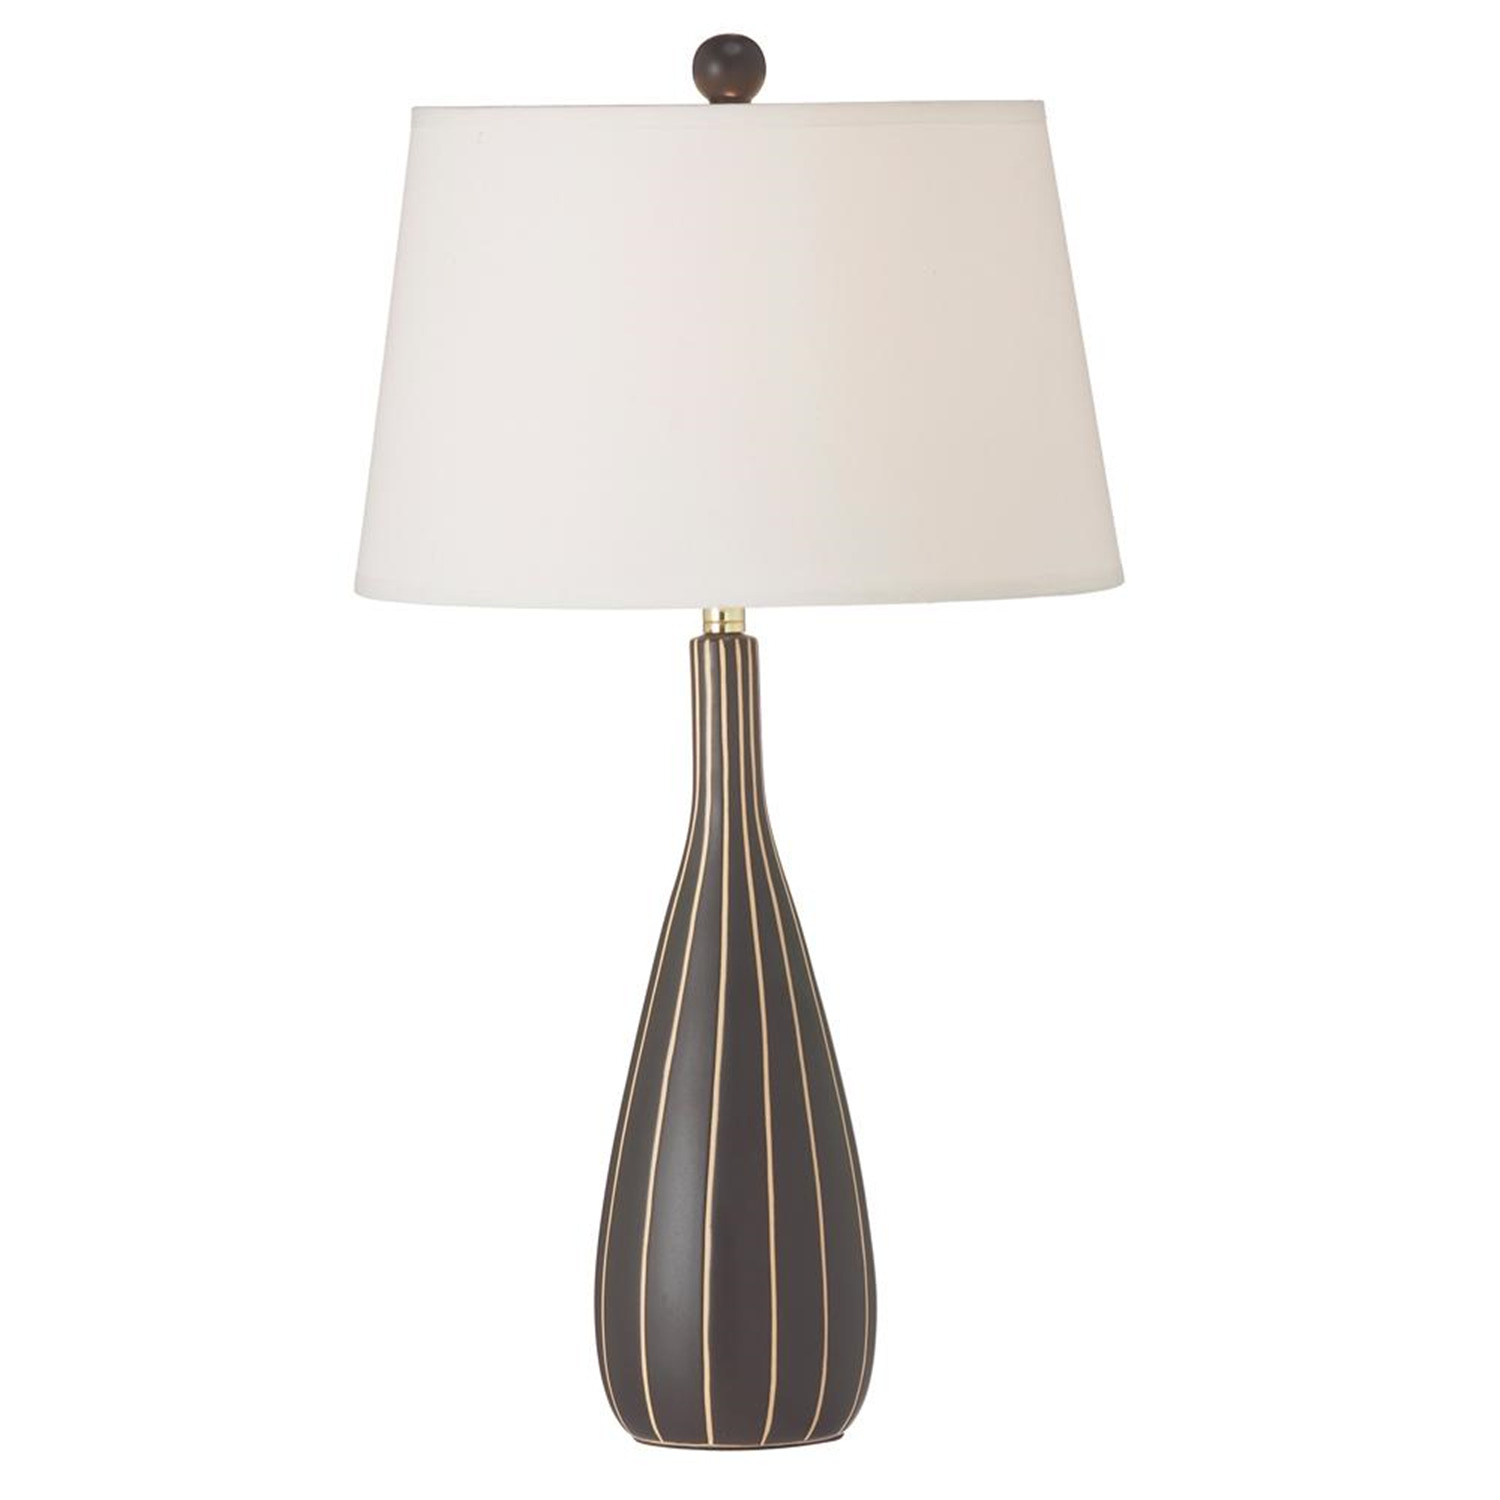 Dainolite Coffee Ceramic Table Lamp With Stripes By Oj Commerce